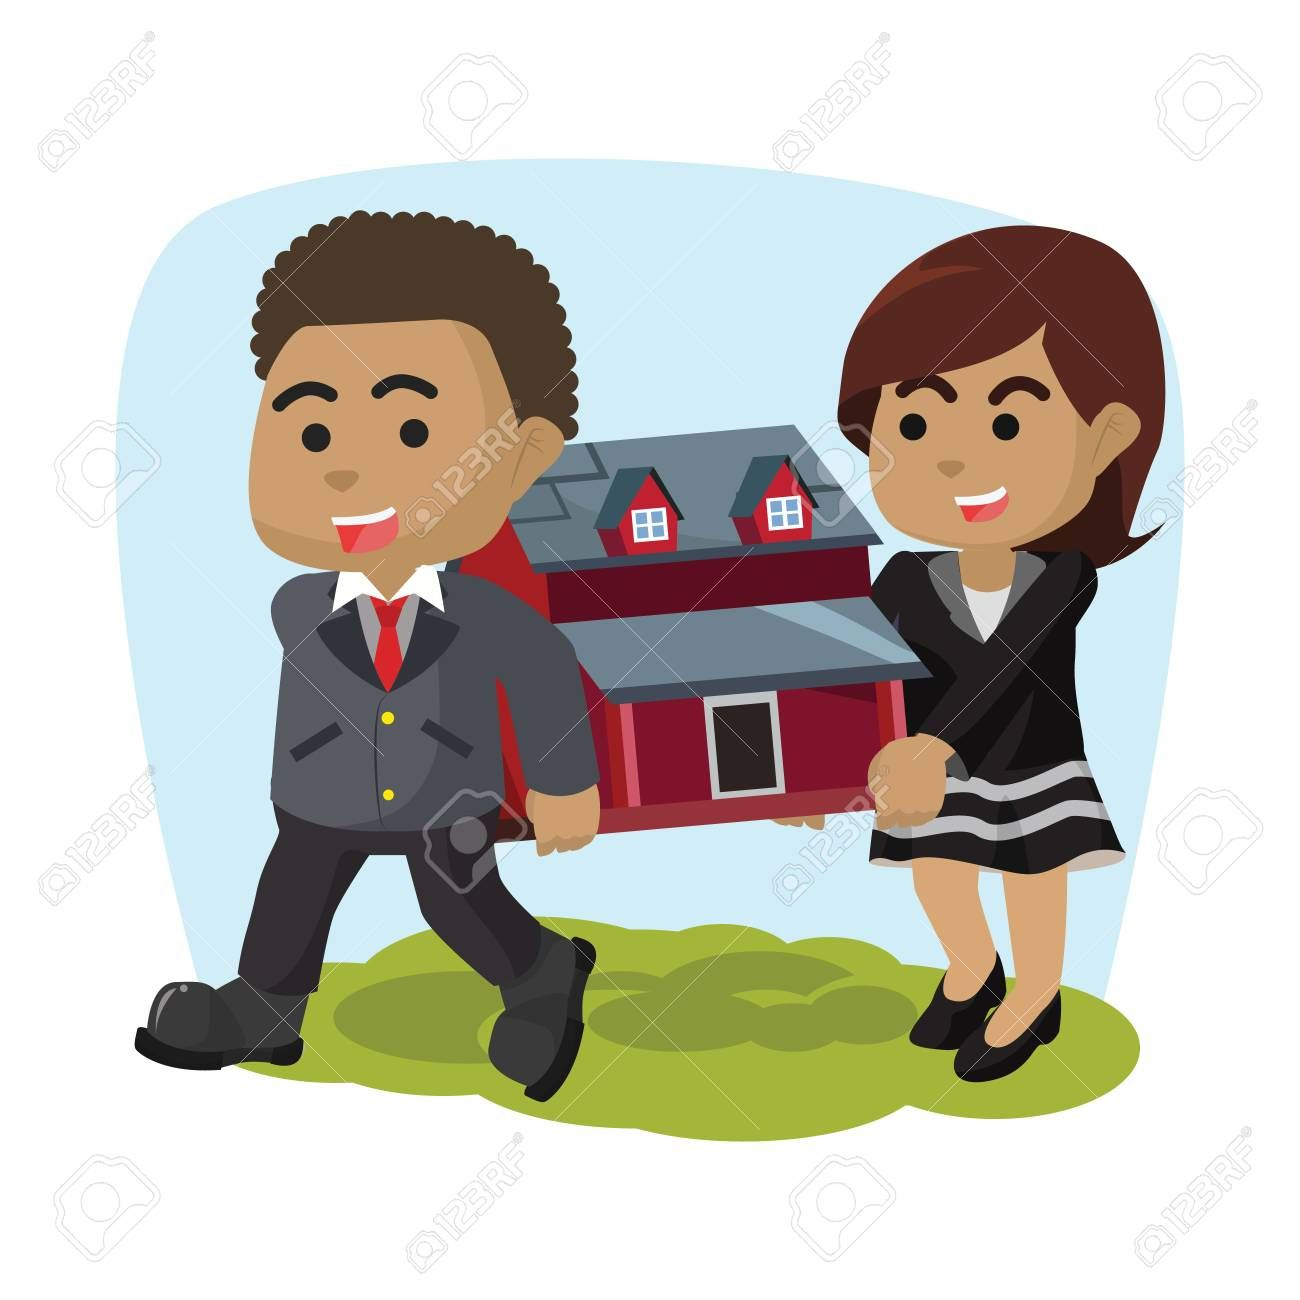 African businessman and woman carrying miniature housea